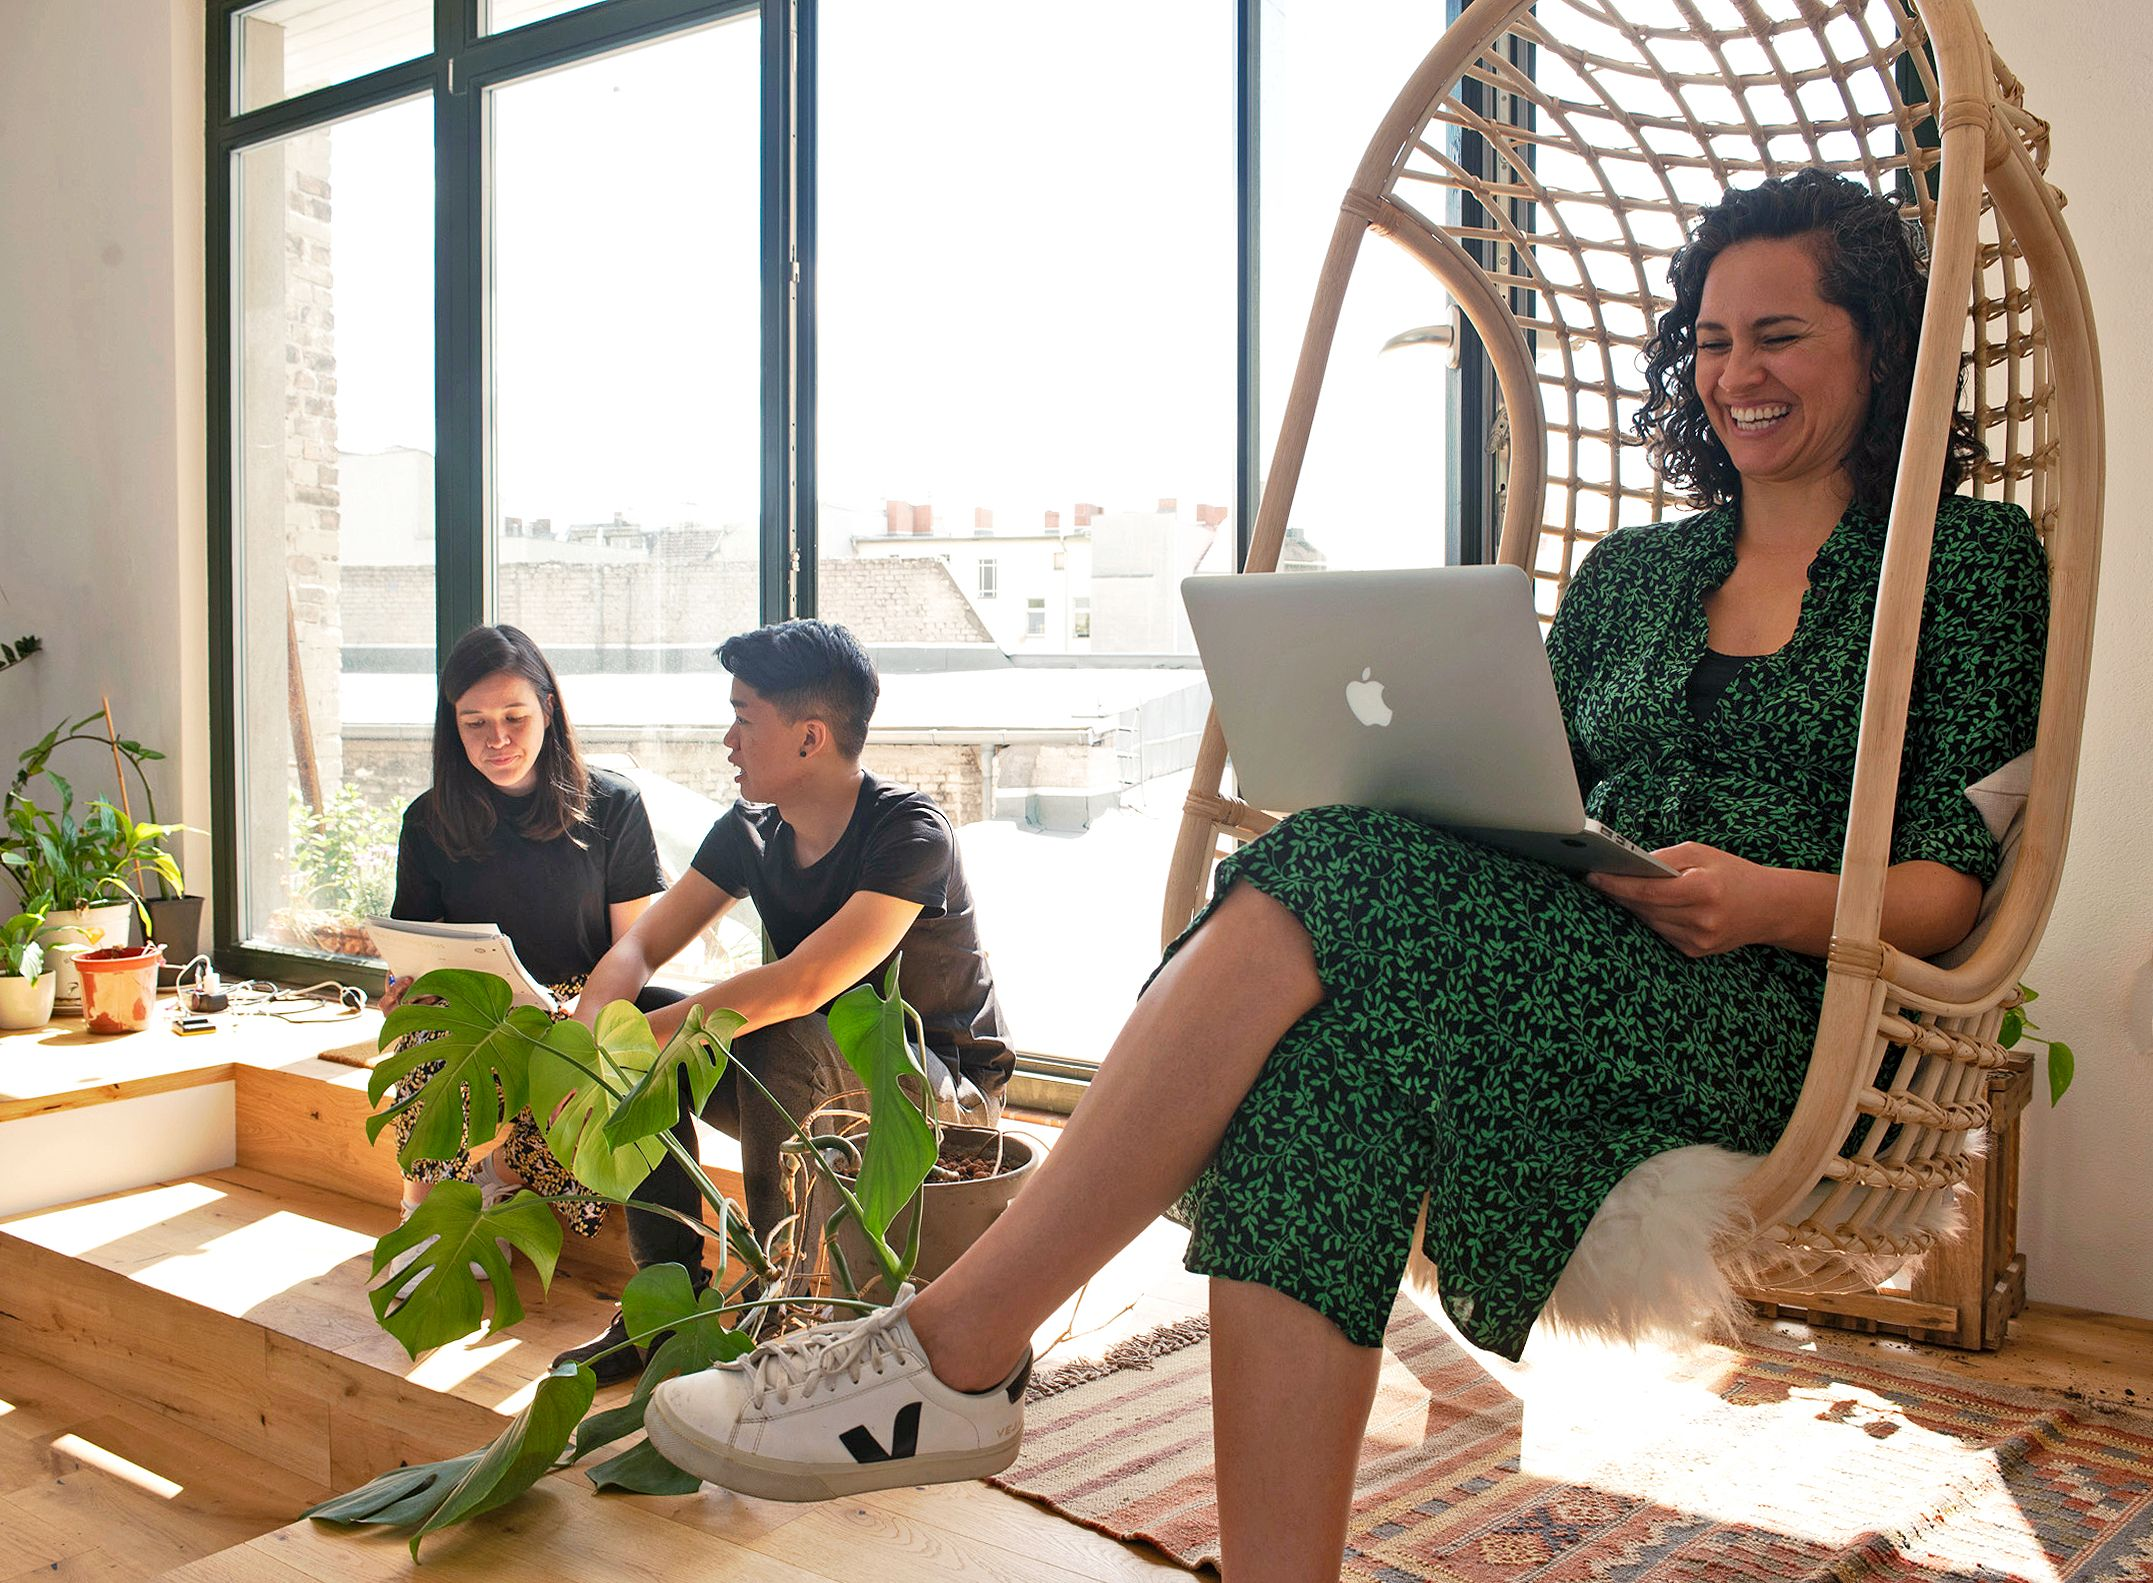 A smiling colleague works on her laptop in the sun, in a swing chair